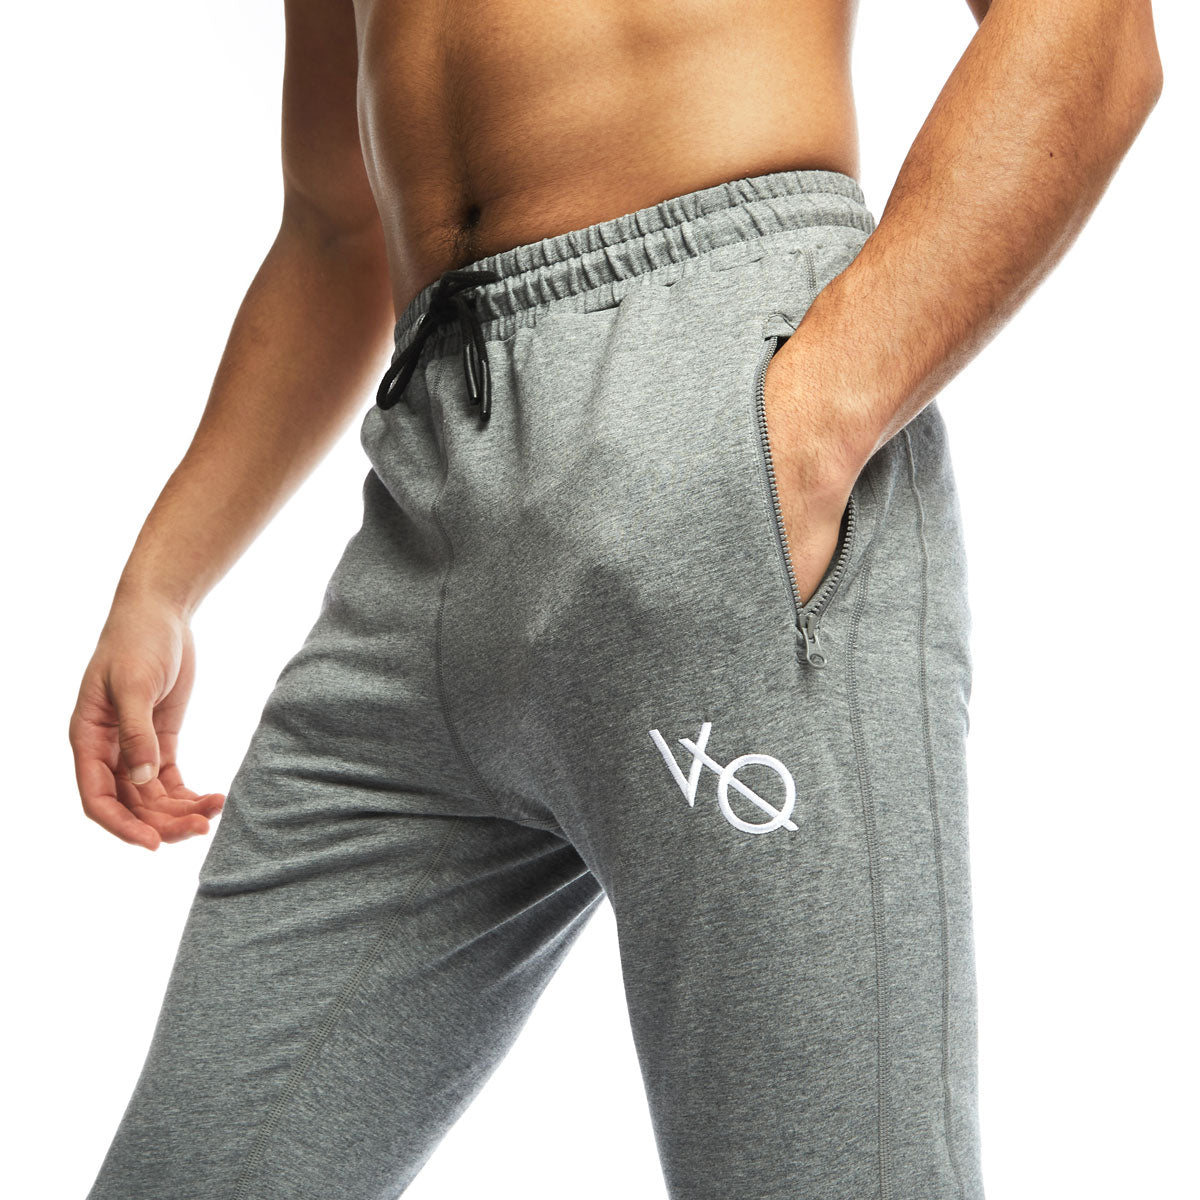 VQFIT Grey Eclipse Tapered Sweatpants